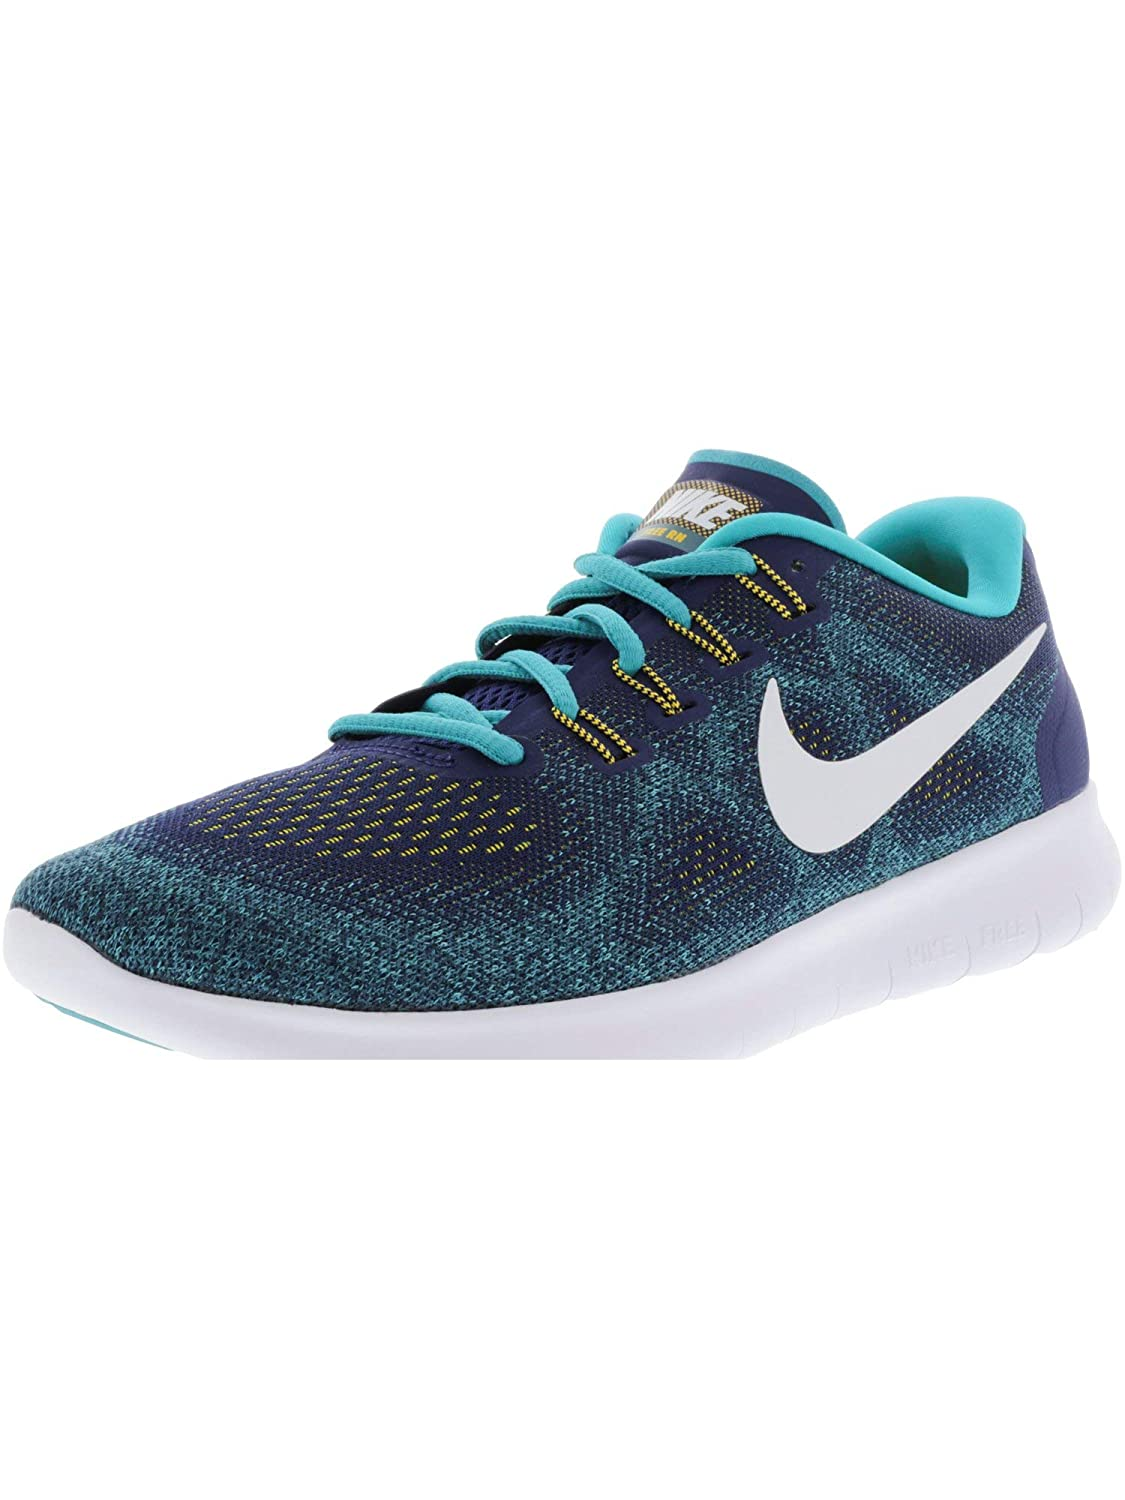 1c1e3fed15bf Nike Men s Free Run 2017 Blue Running Shoes (UK-9)  Buy Online at Low  Prices in India - Amazon.in